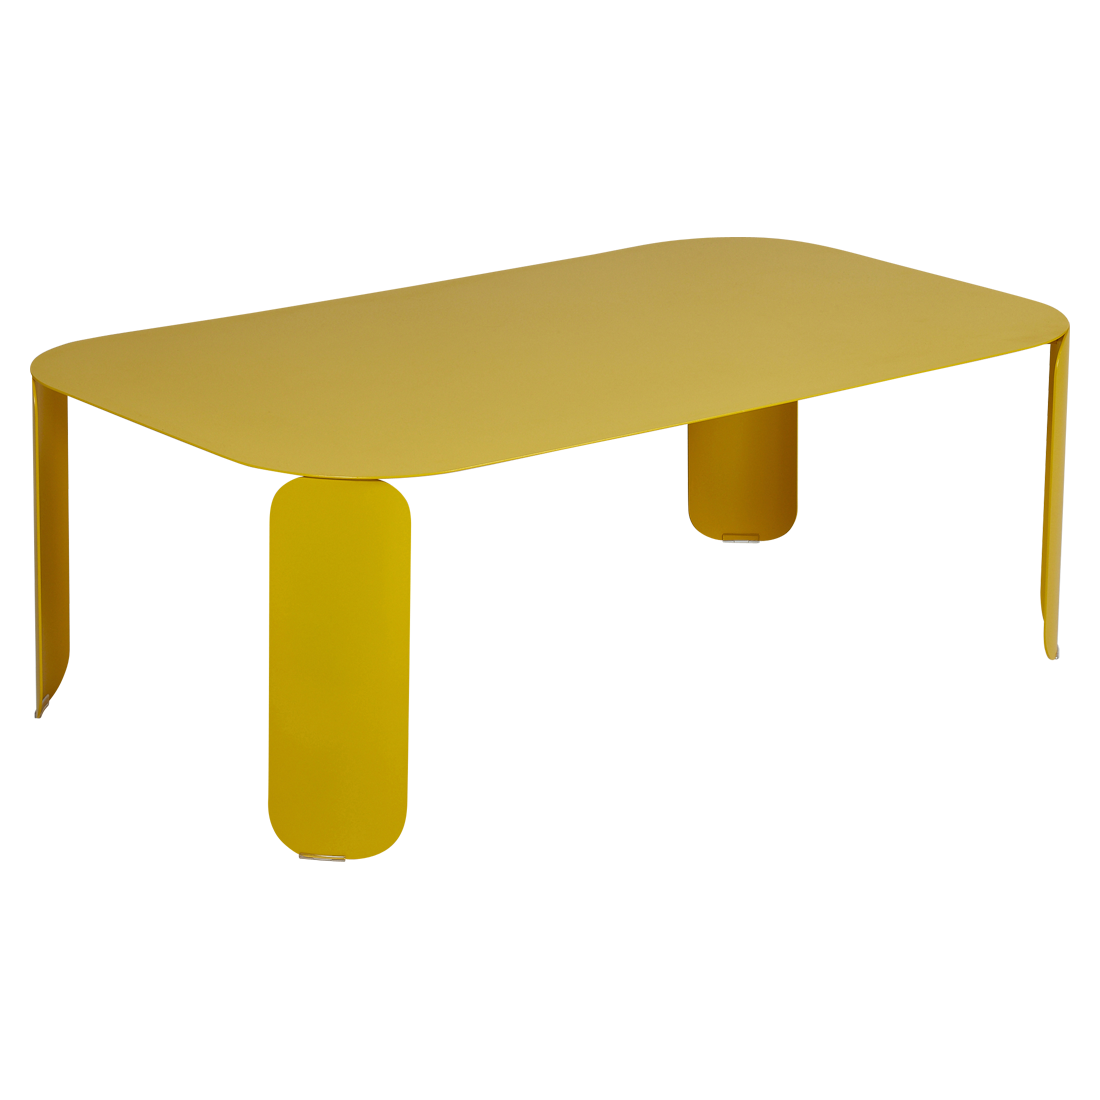 table basse metal, table basse fermob, table basse design, table basse jaune